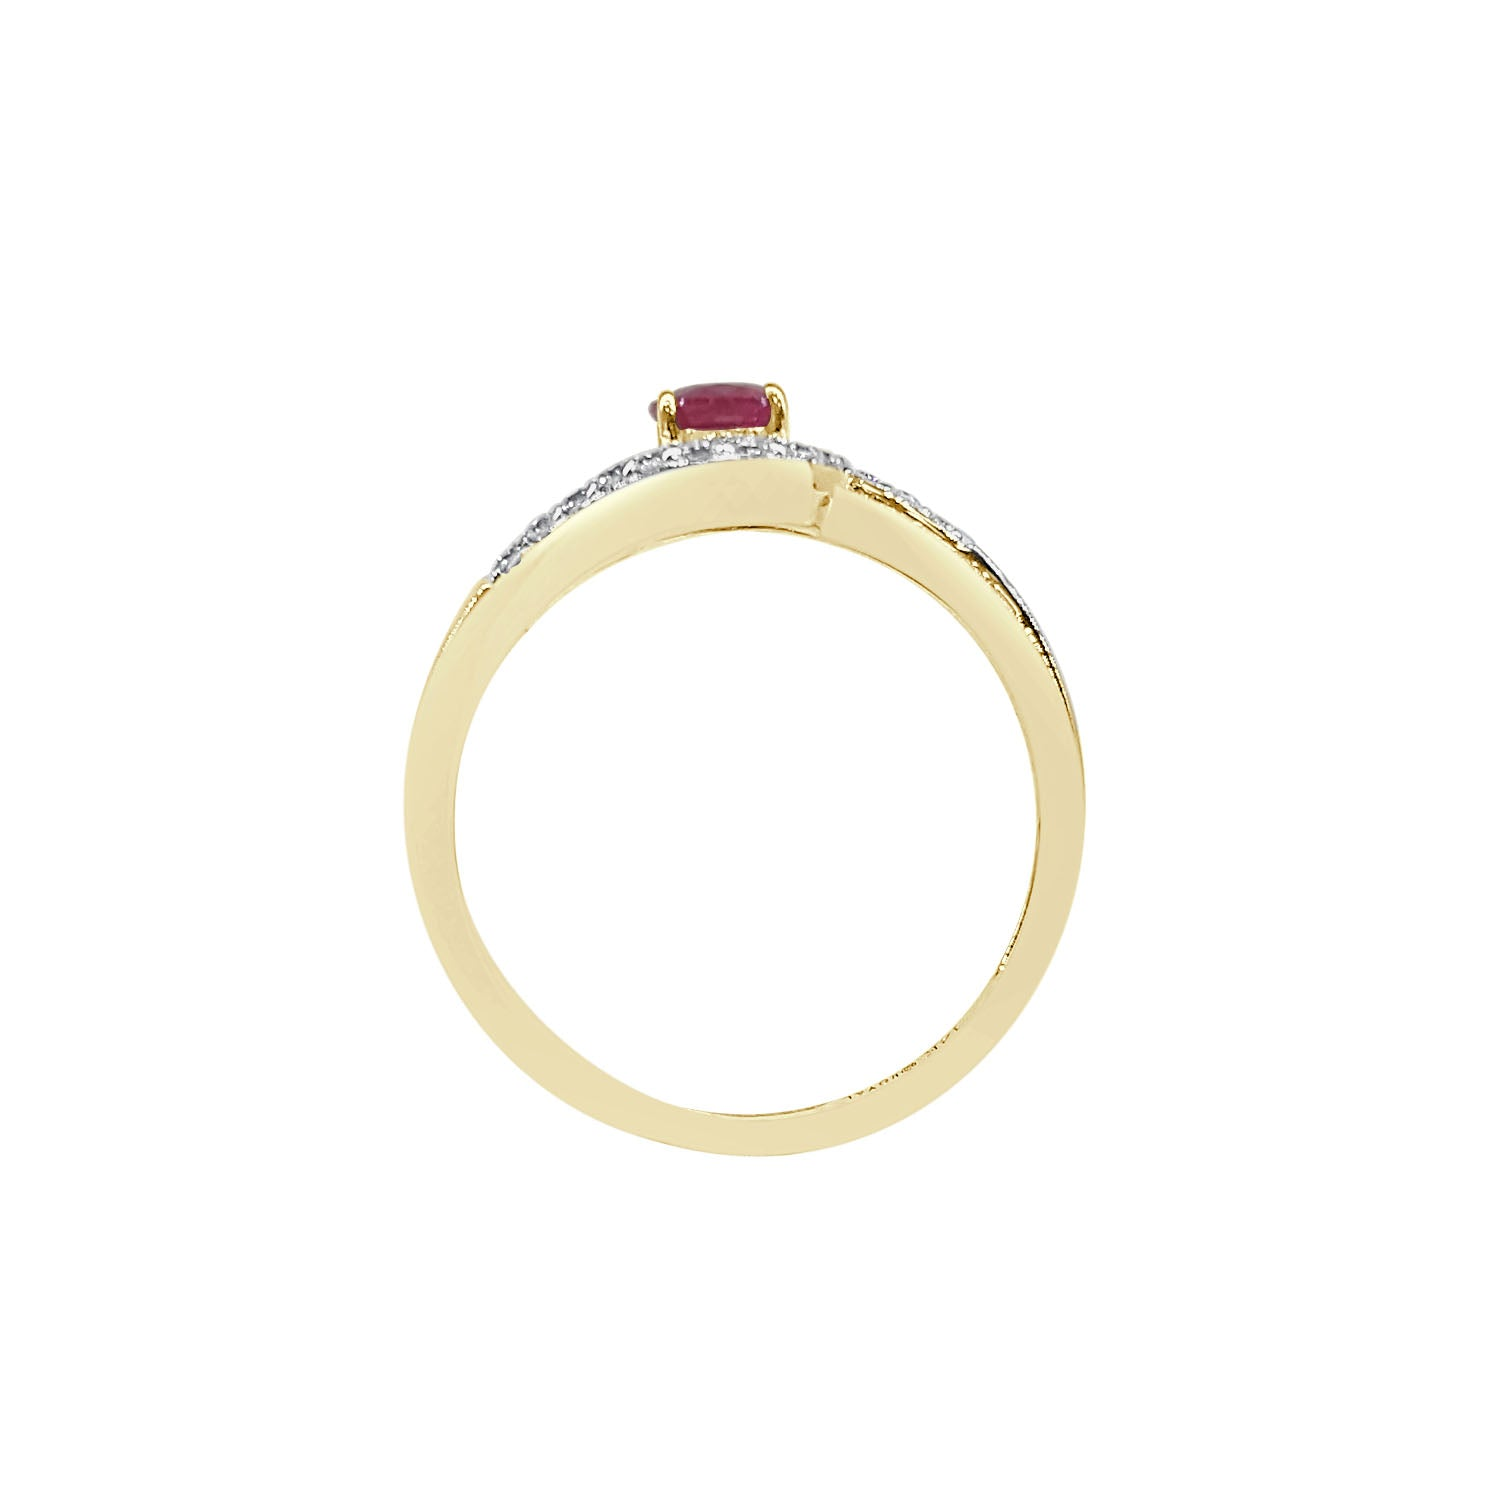 Oval Ruby With Twist Diamond Halo Ring In Yellow Gold